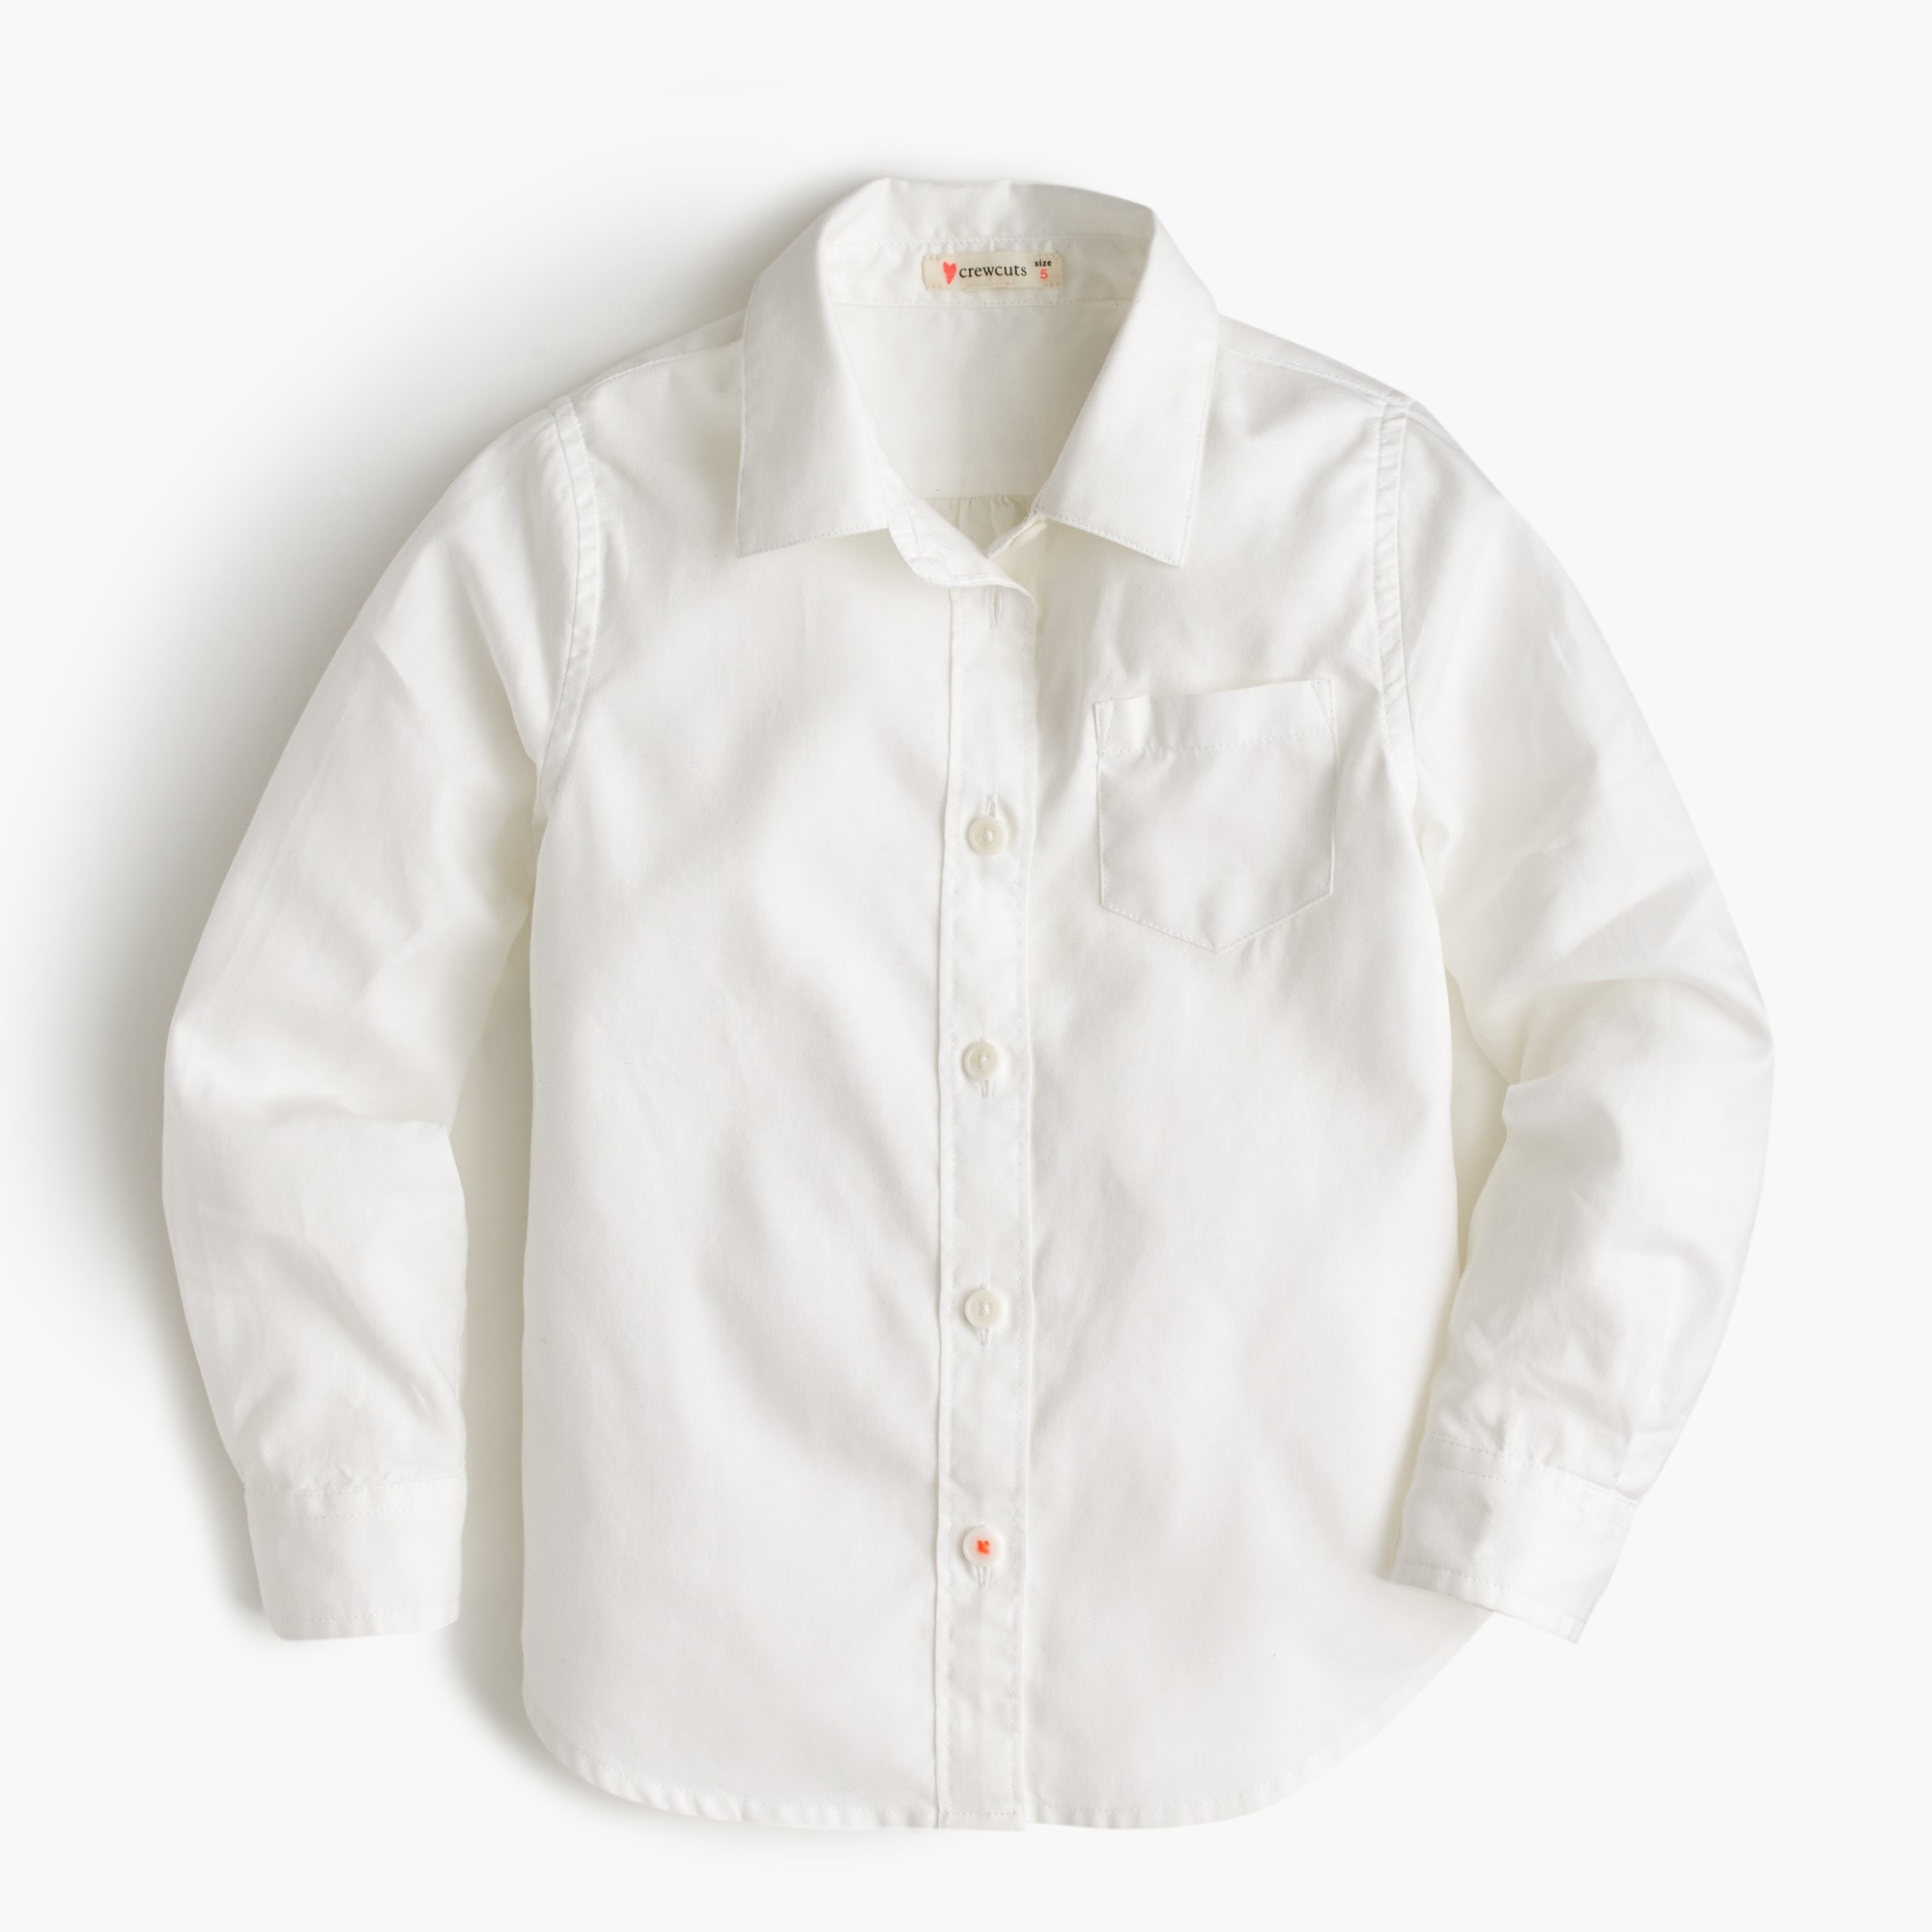 Image 1 for Girls' long-sleeve tissue oxford shirt